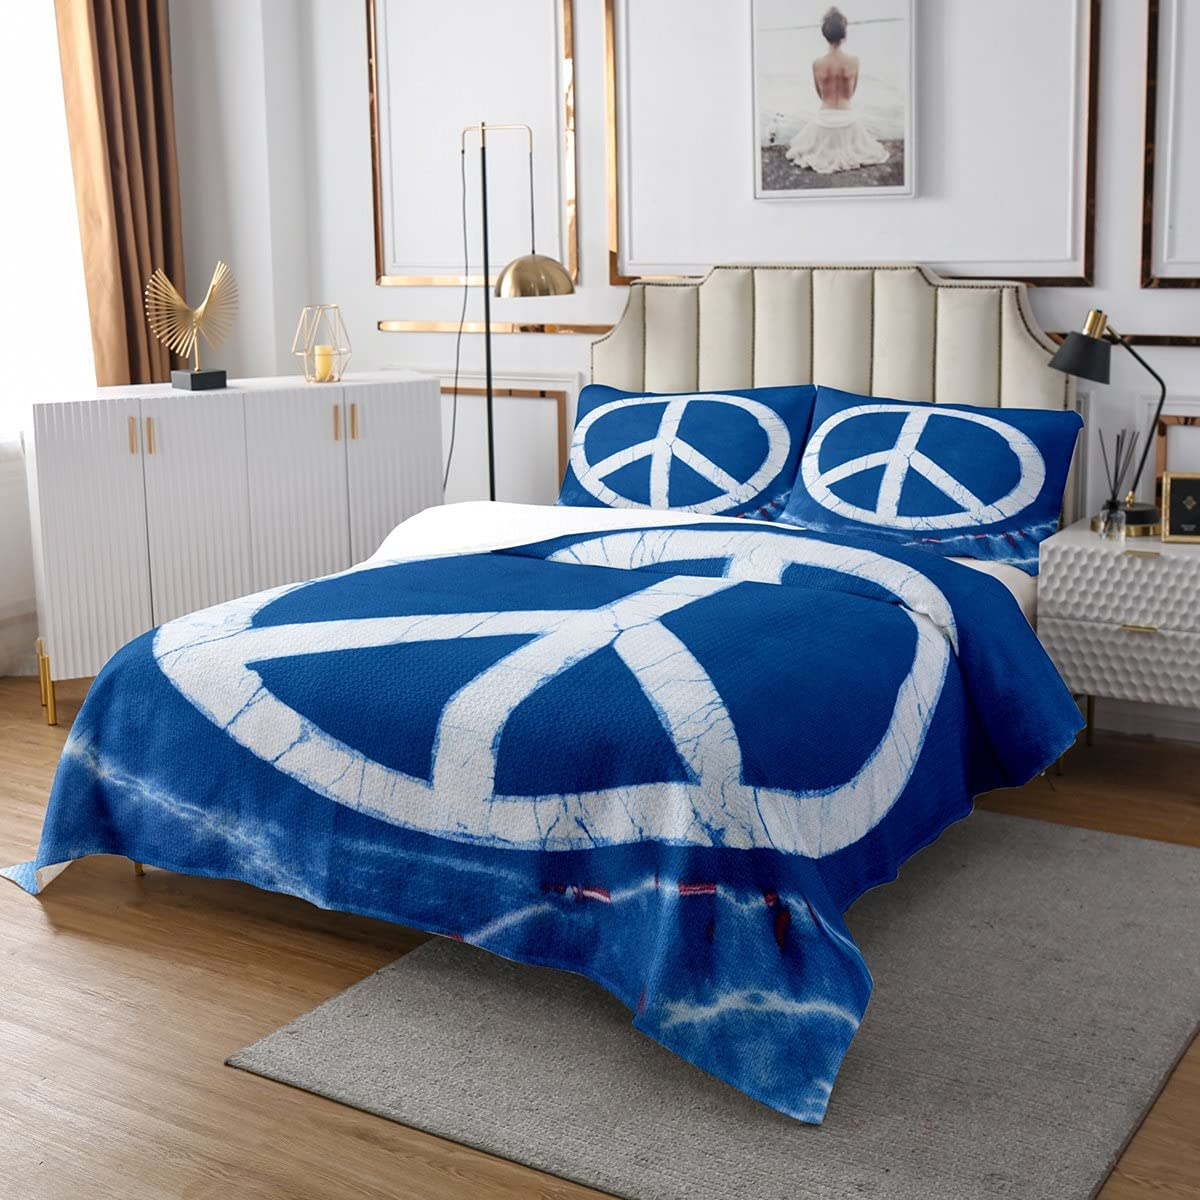 Tie Dye Coverlet White Love Overseas parallel import regular item and Piec 2 Note Classic Boho Peace Max 68% OFF